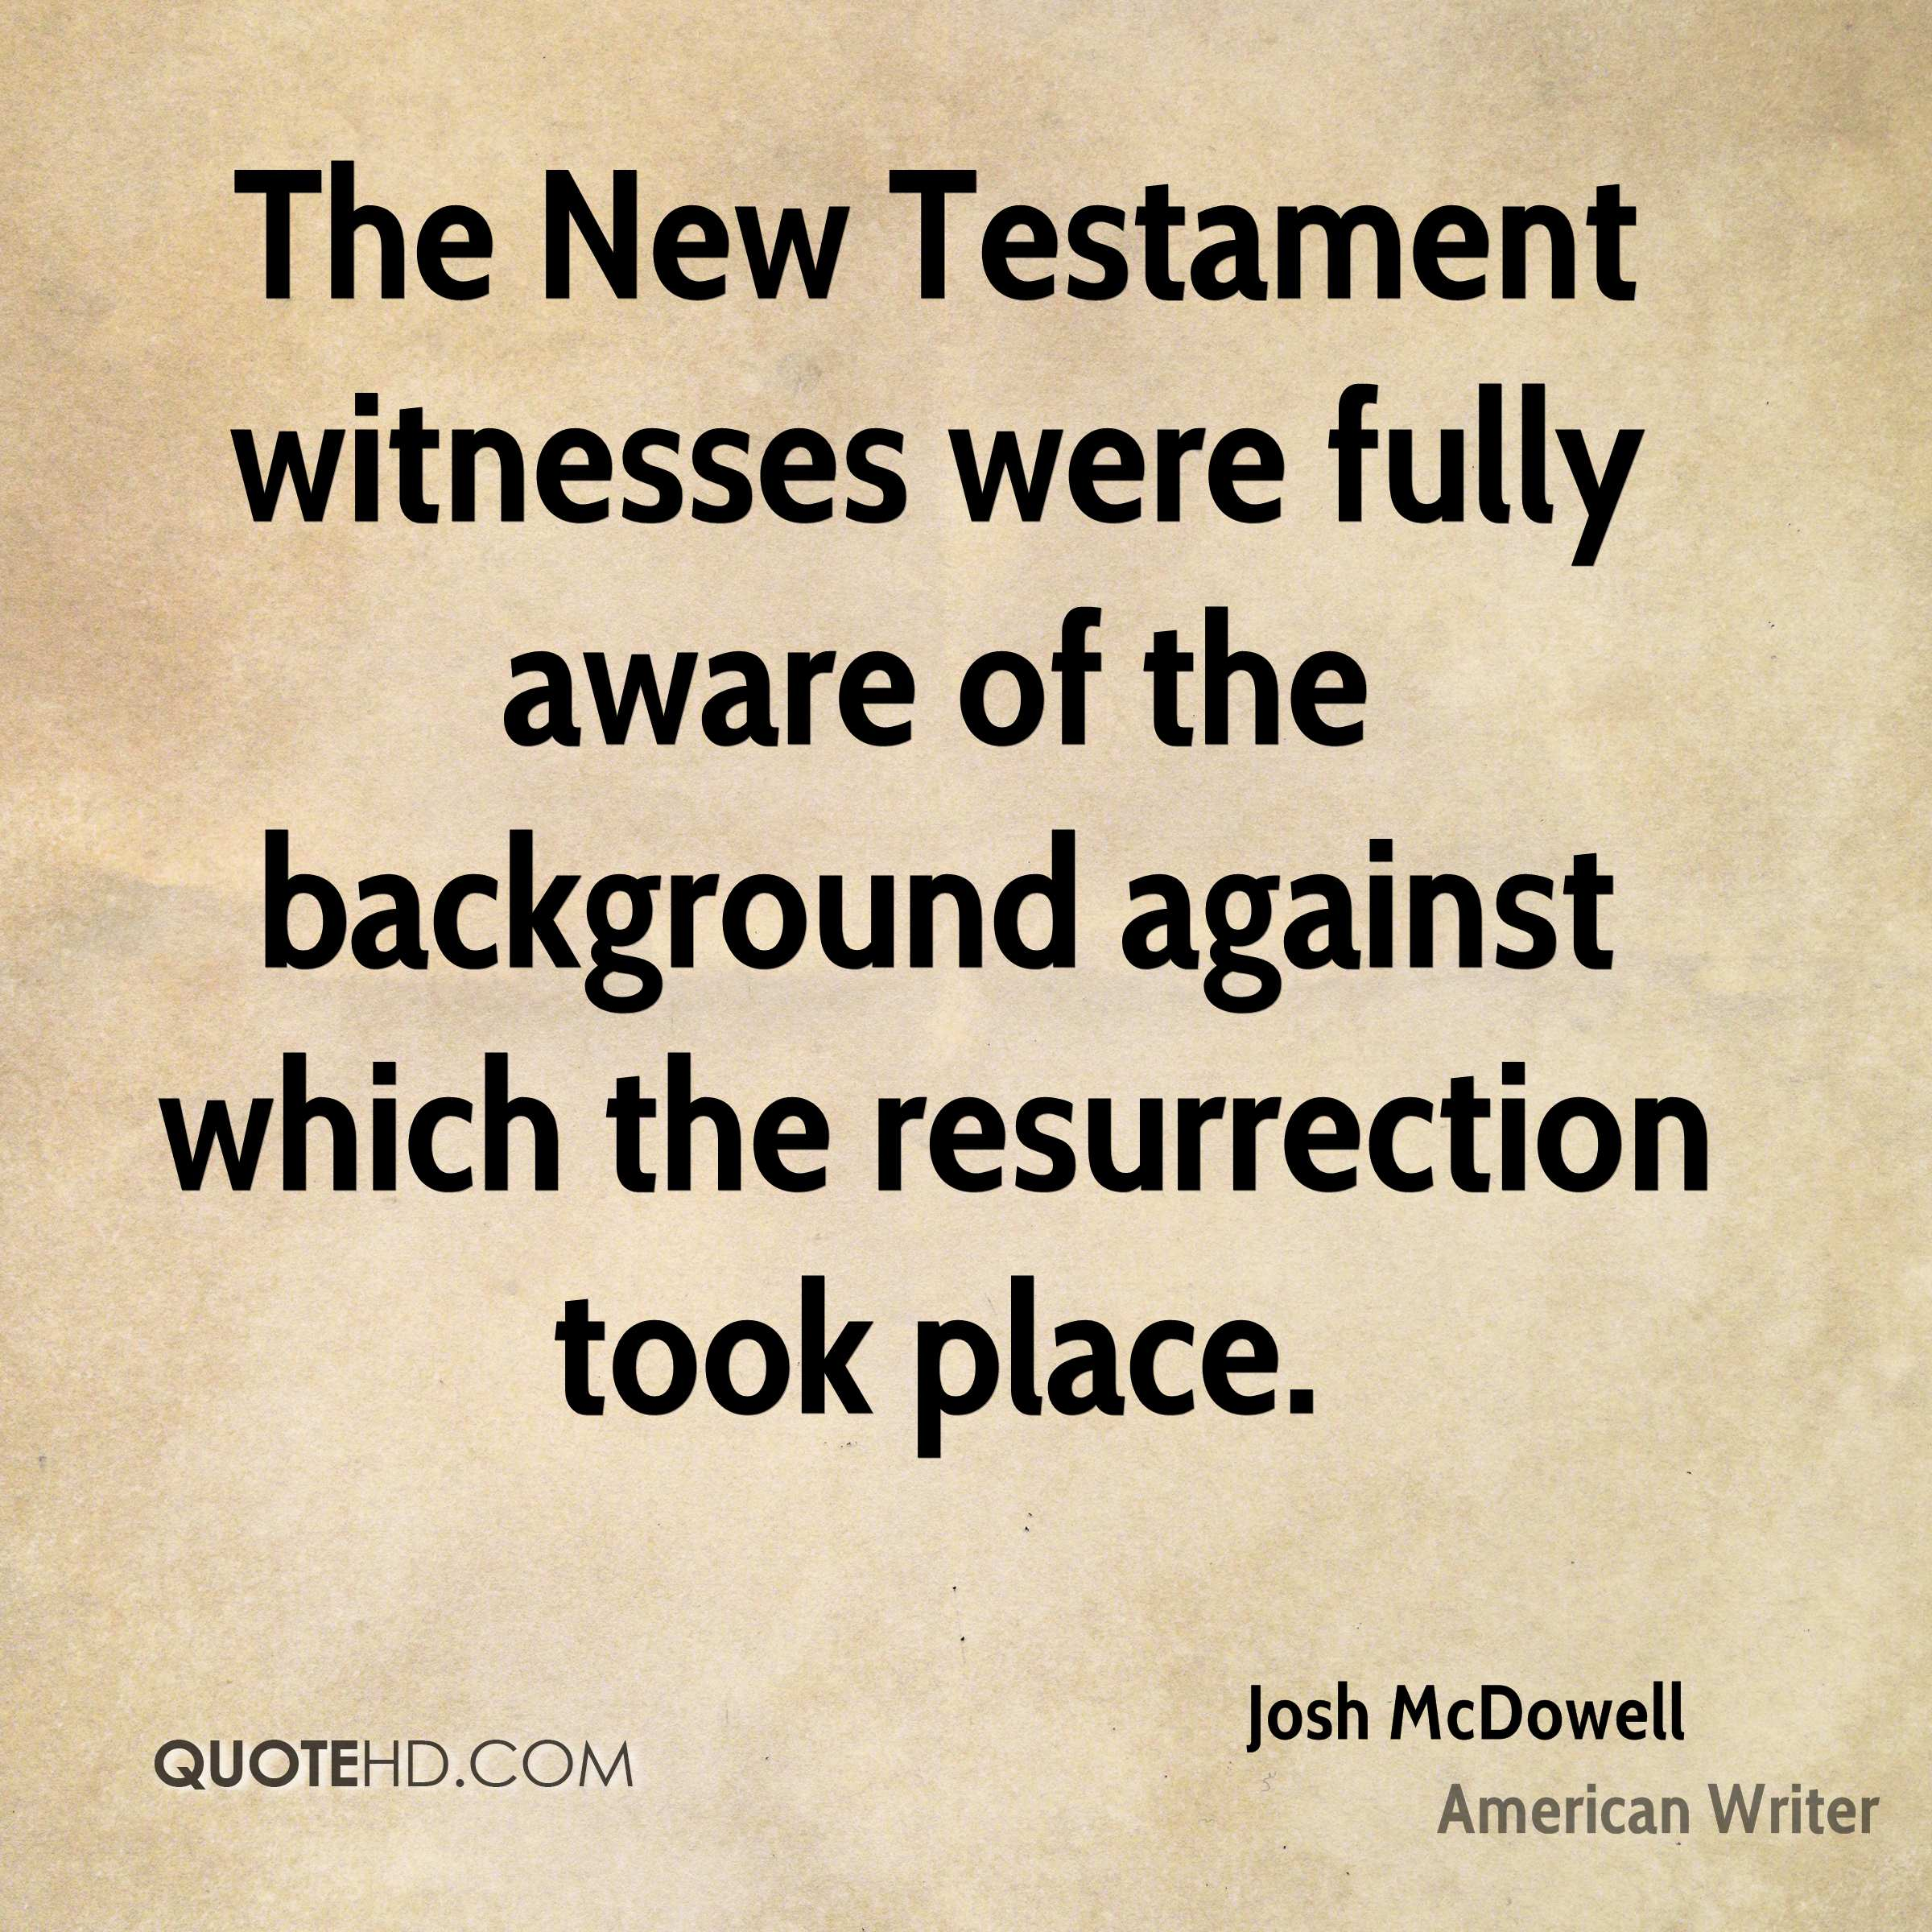 The New Testament witnesses were fully aware of the background against which the resurrection took place.